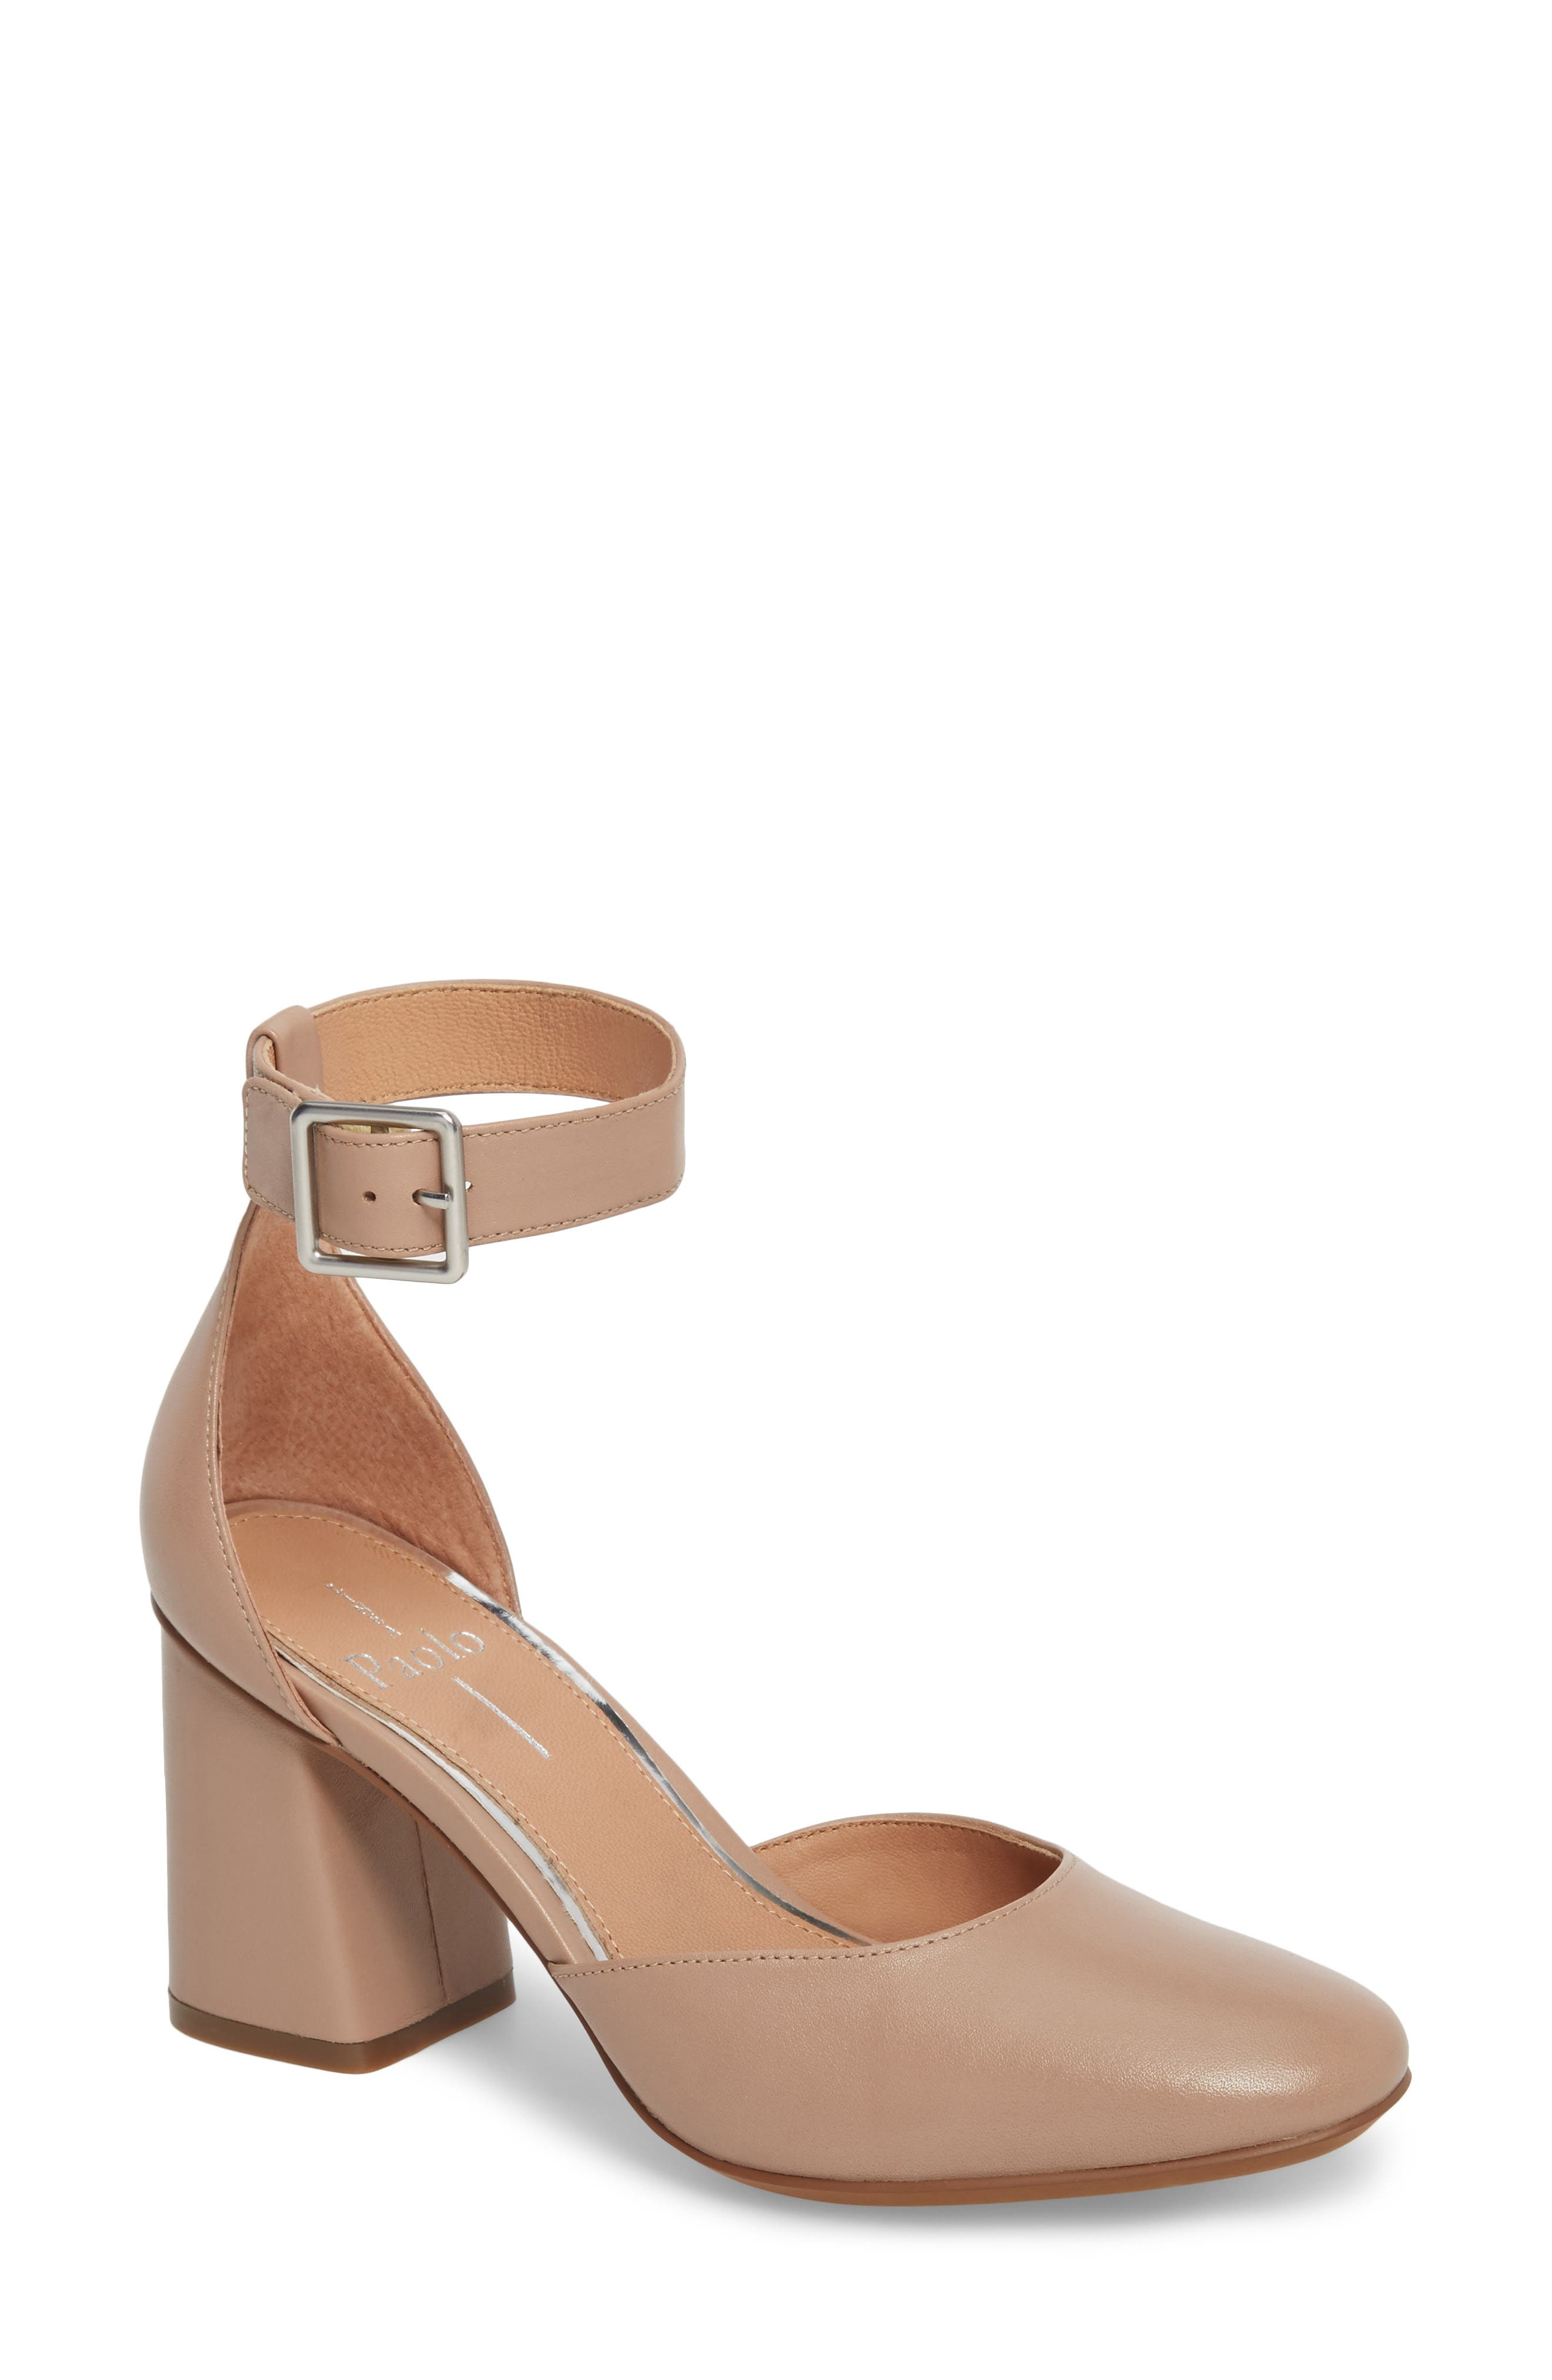 Alternate Image 1 Selected - Linea Paolo Maya Ankle Strap Pump (Women)